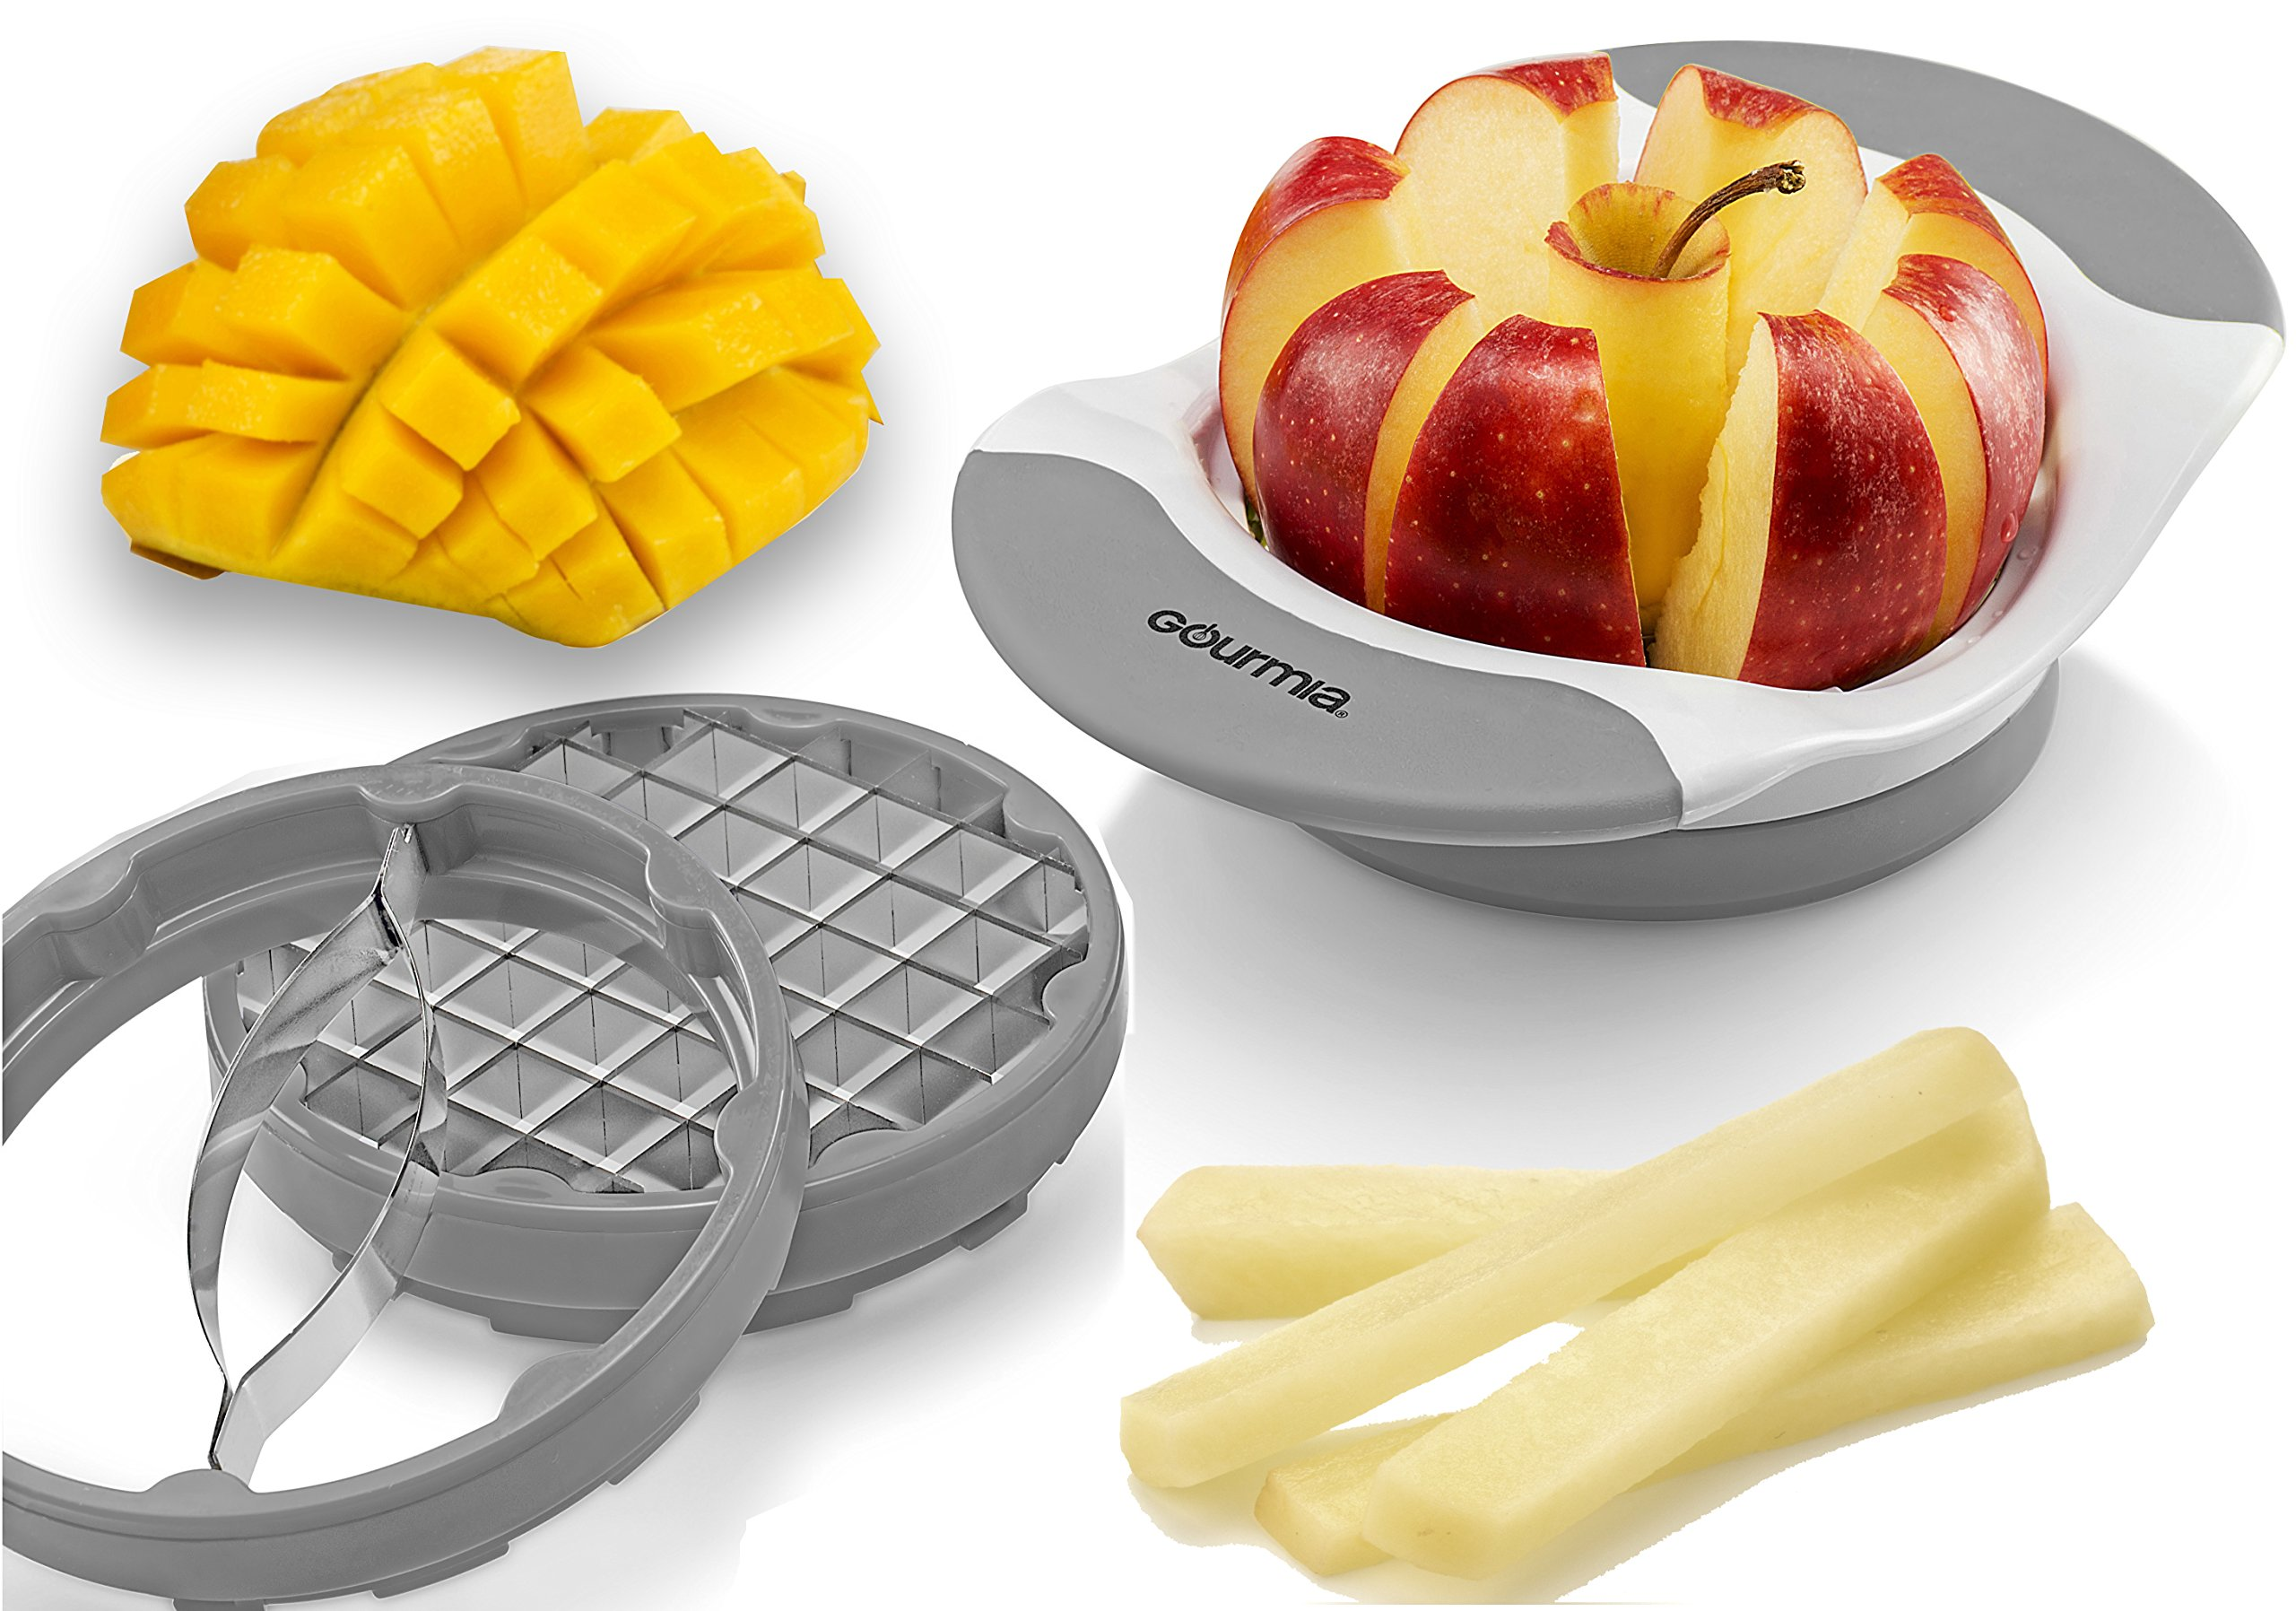 Gourmia 3 In 1 Handle Push Cutter, Mango, Apple Slicer & Corer With Bonus French Fries Blade, 3 Stainless Steel And Interchangeable Blades, Durable BPA free food safe material (Gray)